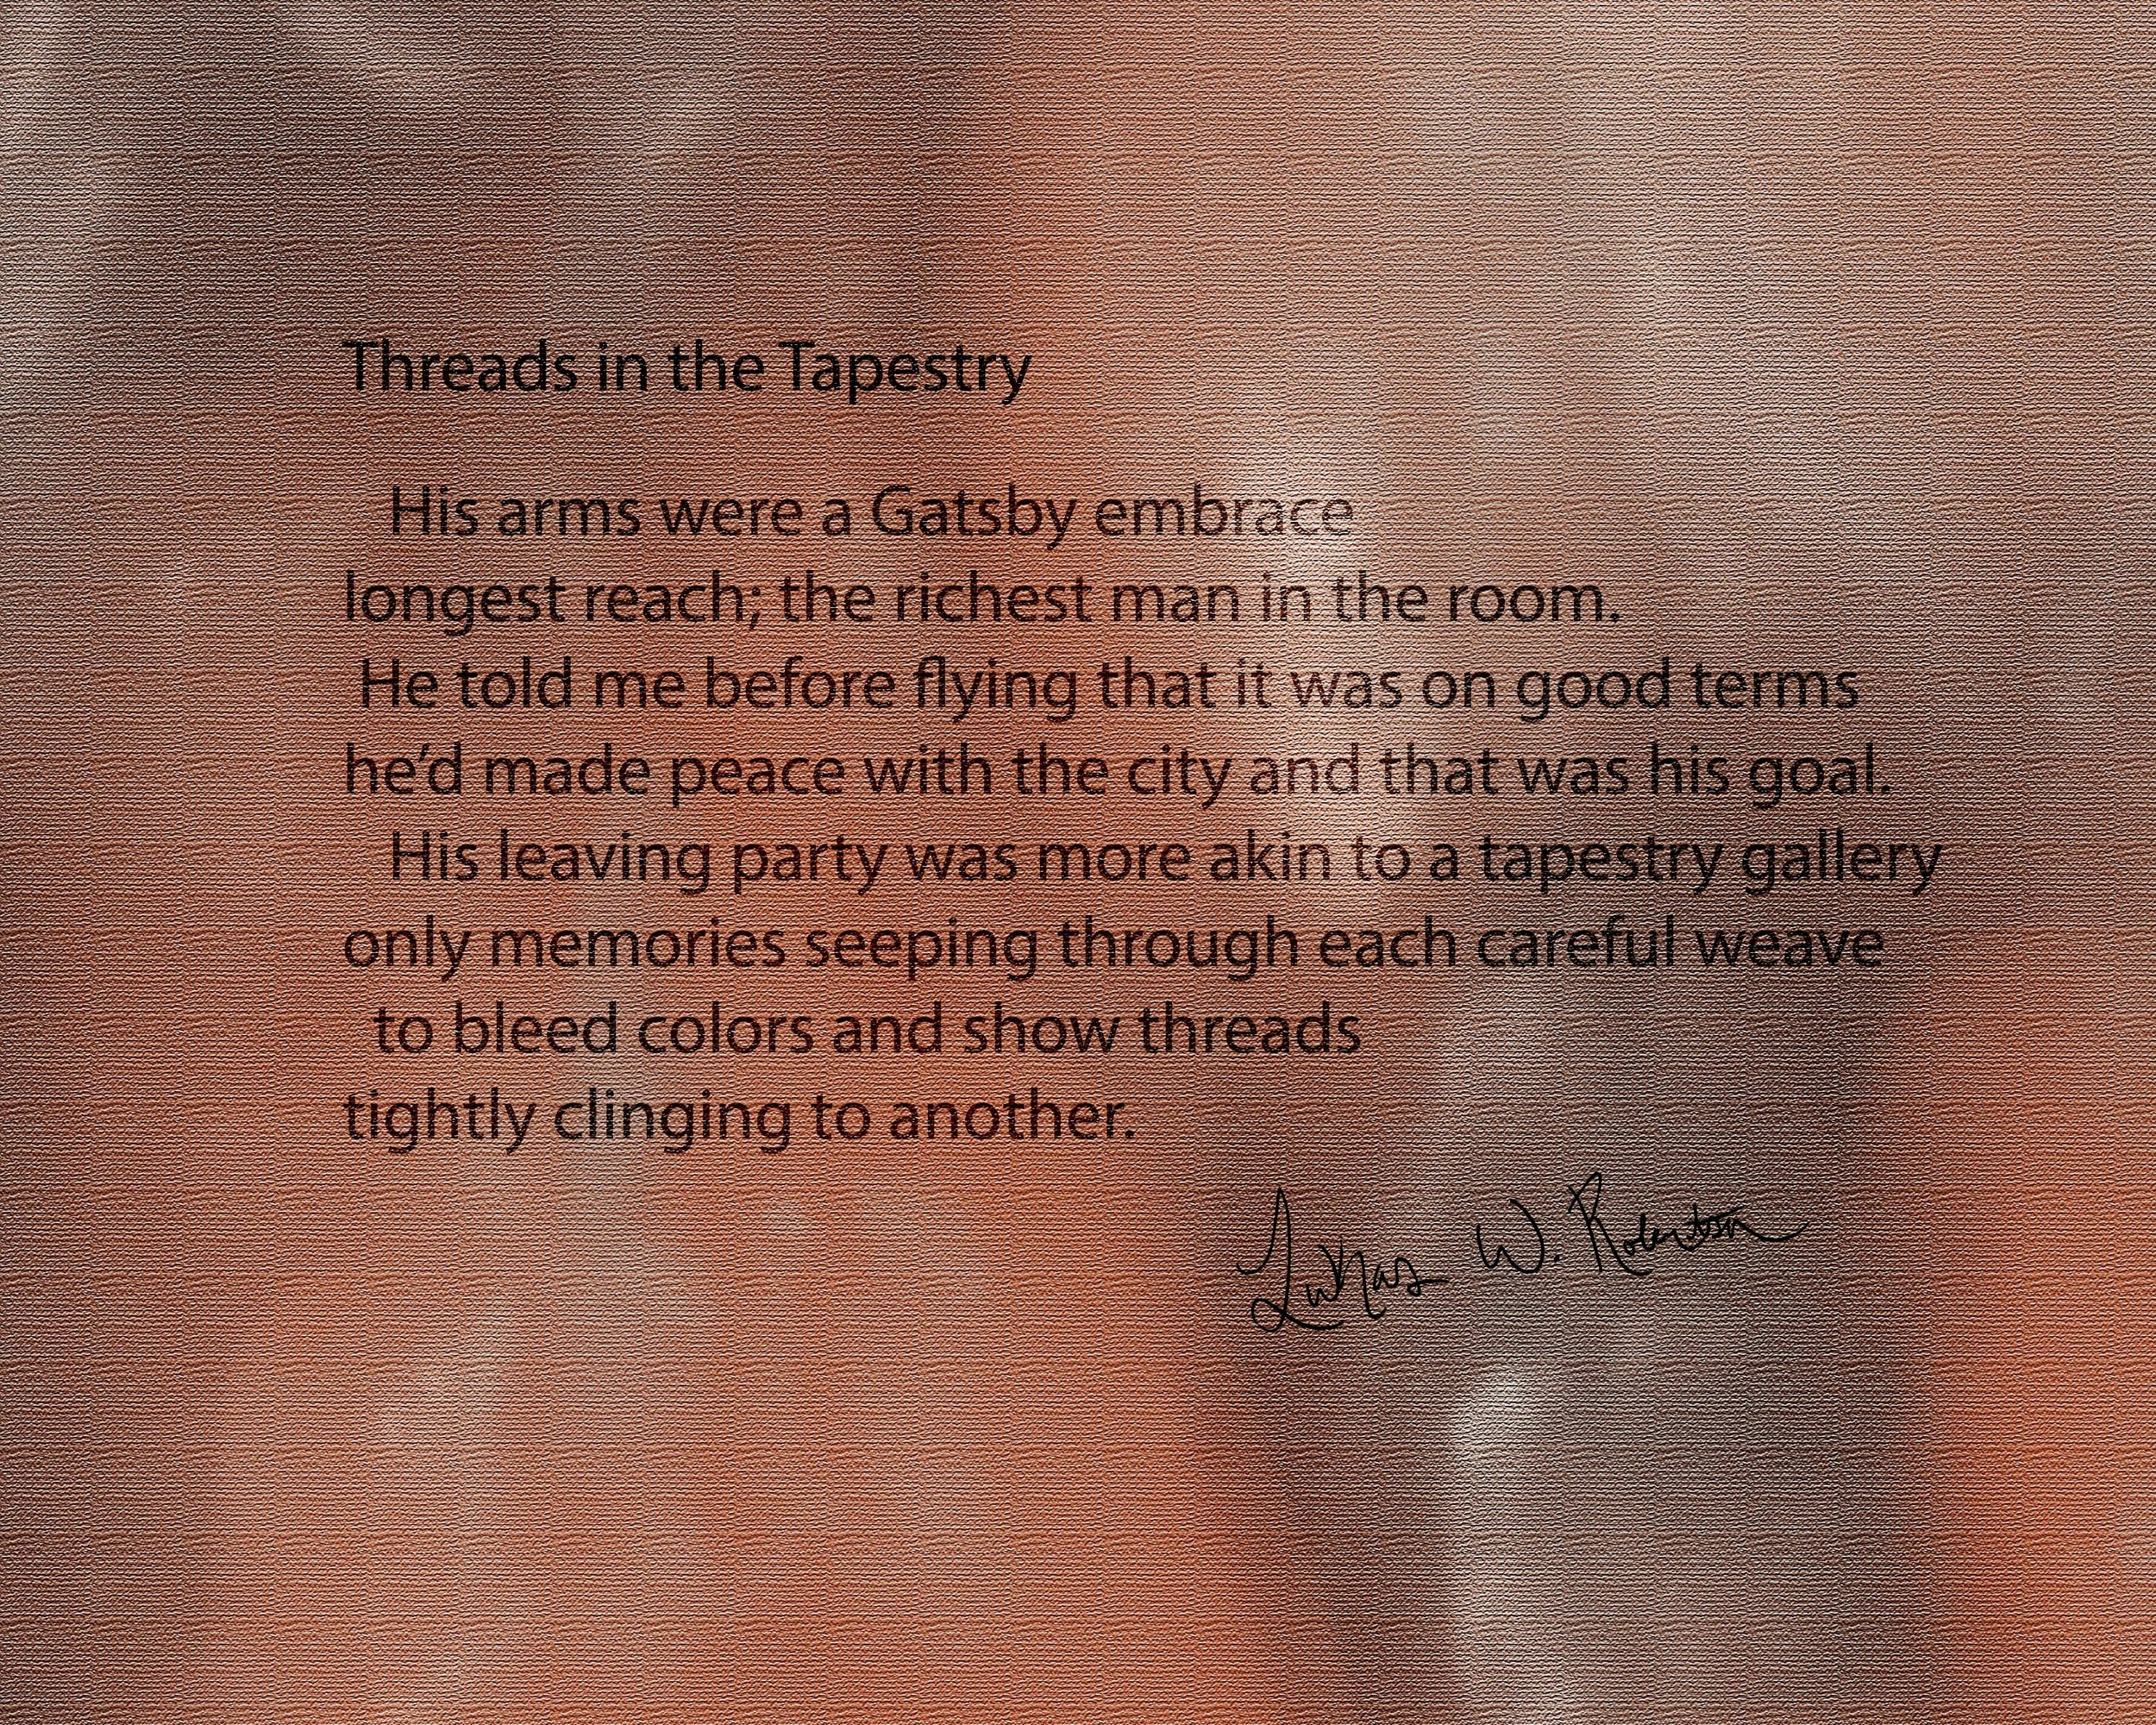 Threads-in-the-Tapestry-1.5.jpg